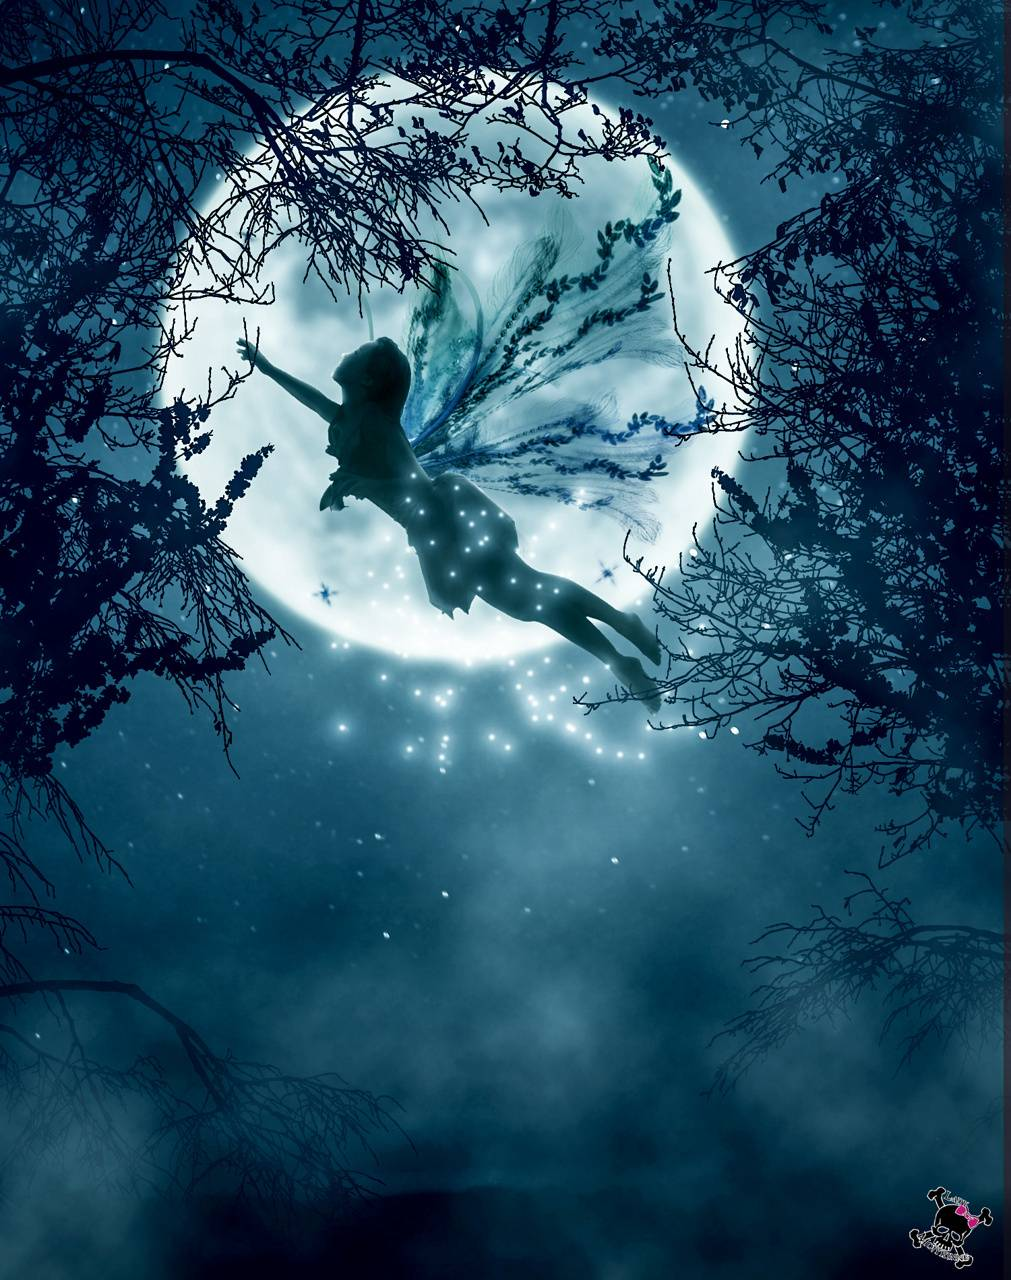 Blue Fairy Wallpaper By Harleypouk C1 Free On Zedge